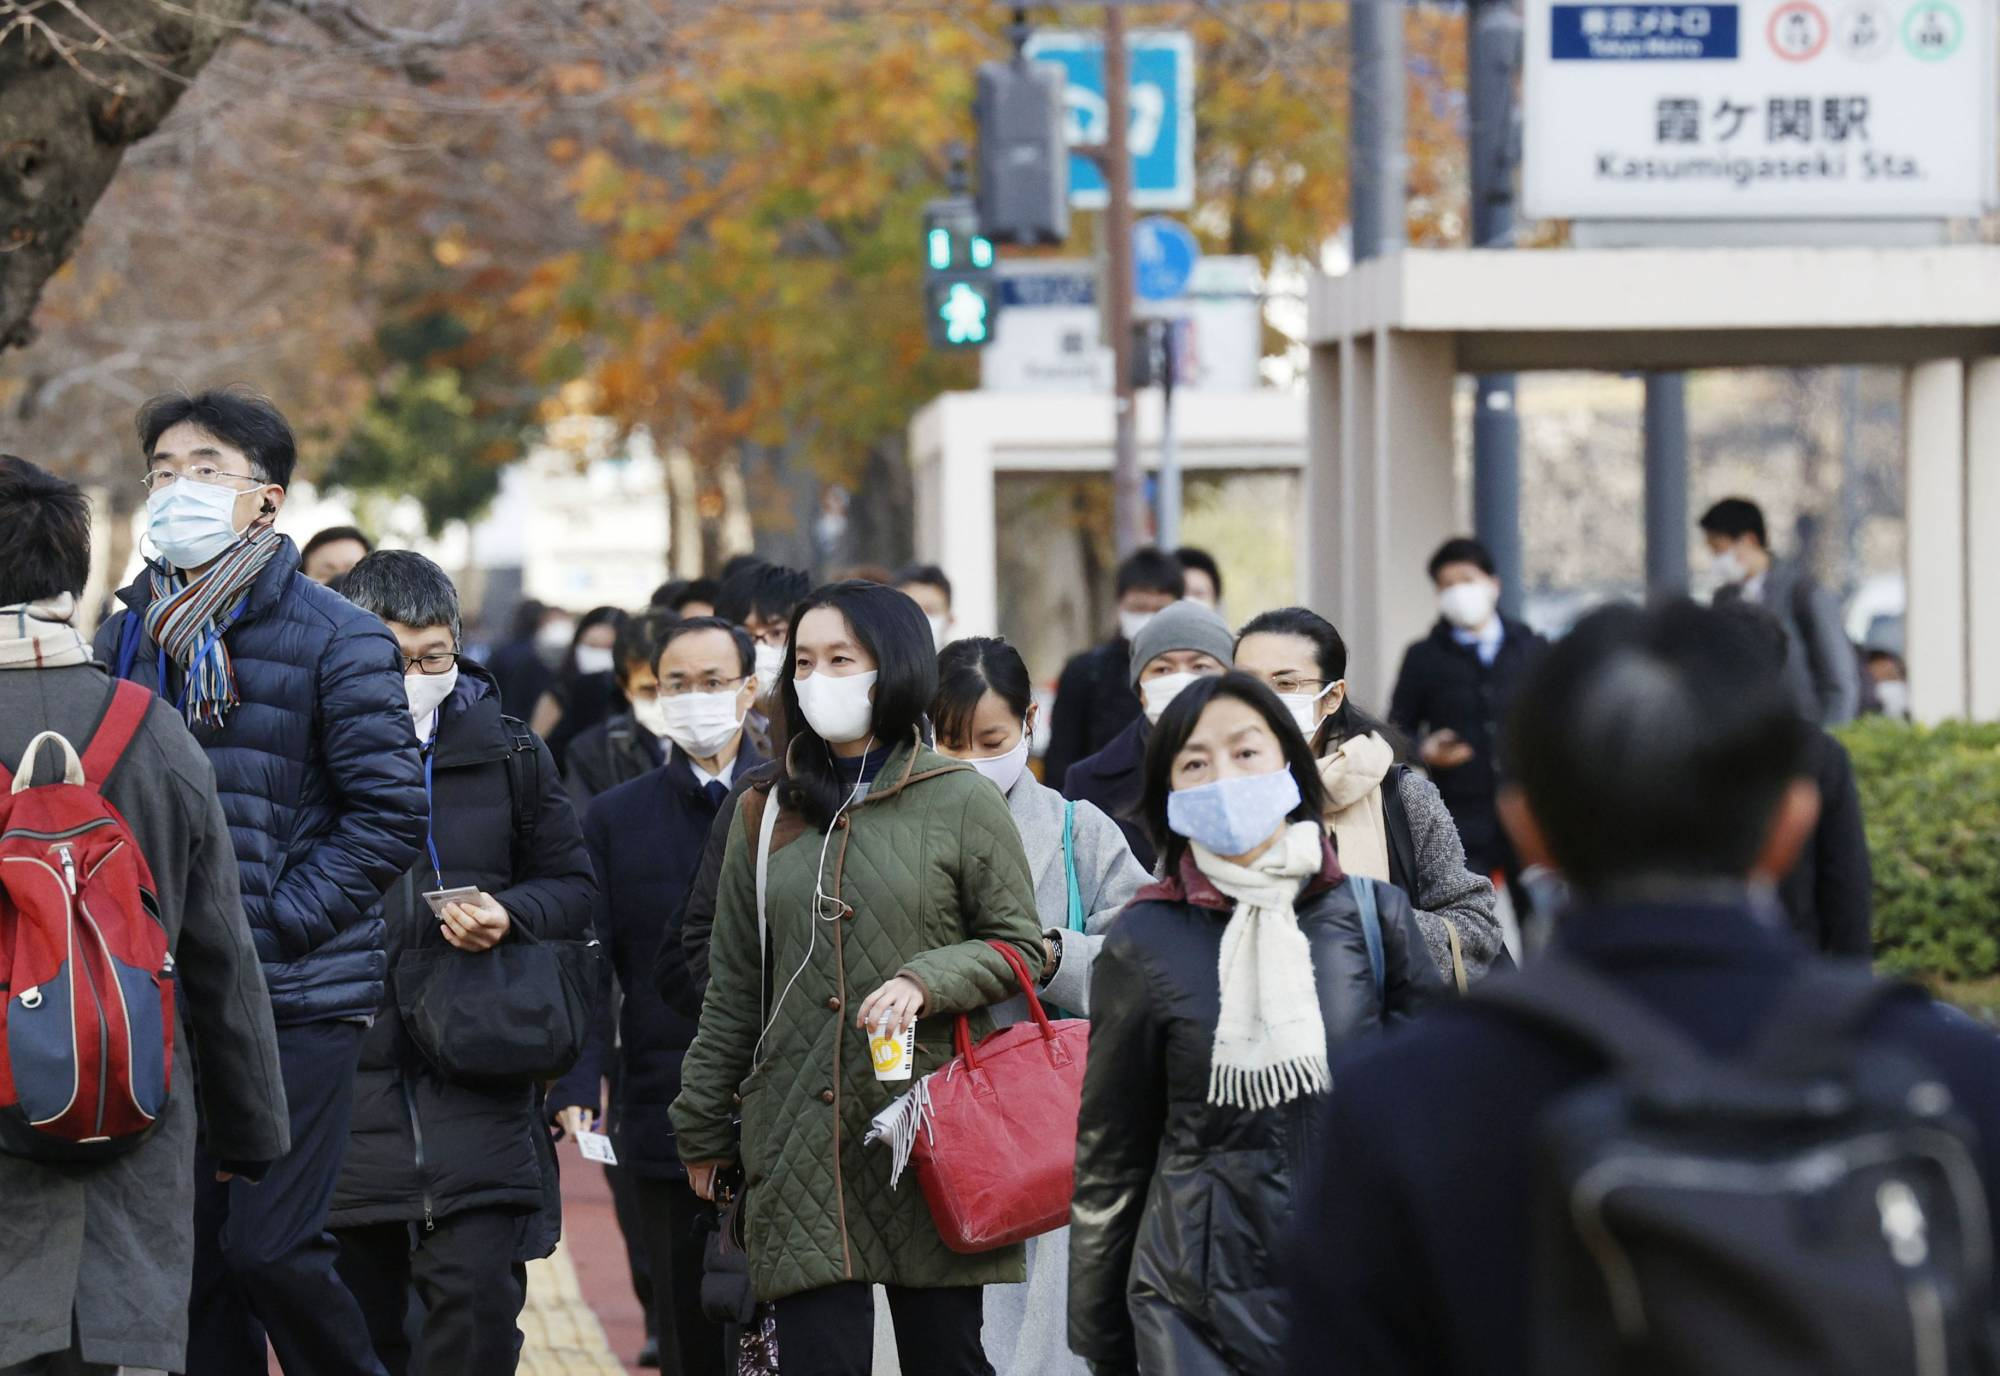 People walk to work in Tokyo on Monday after the New Year's holidays. Economists expect consumption to recover toward the end of this year if COVID-19 vaccinations become available for widespread use by summer. | KYODO